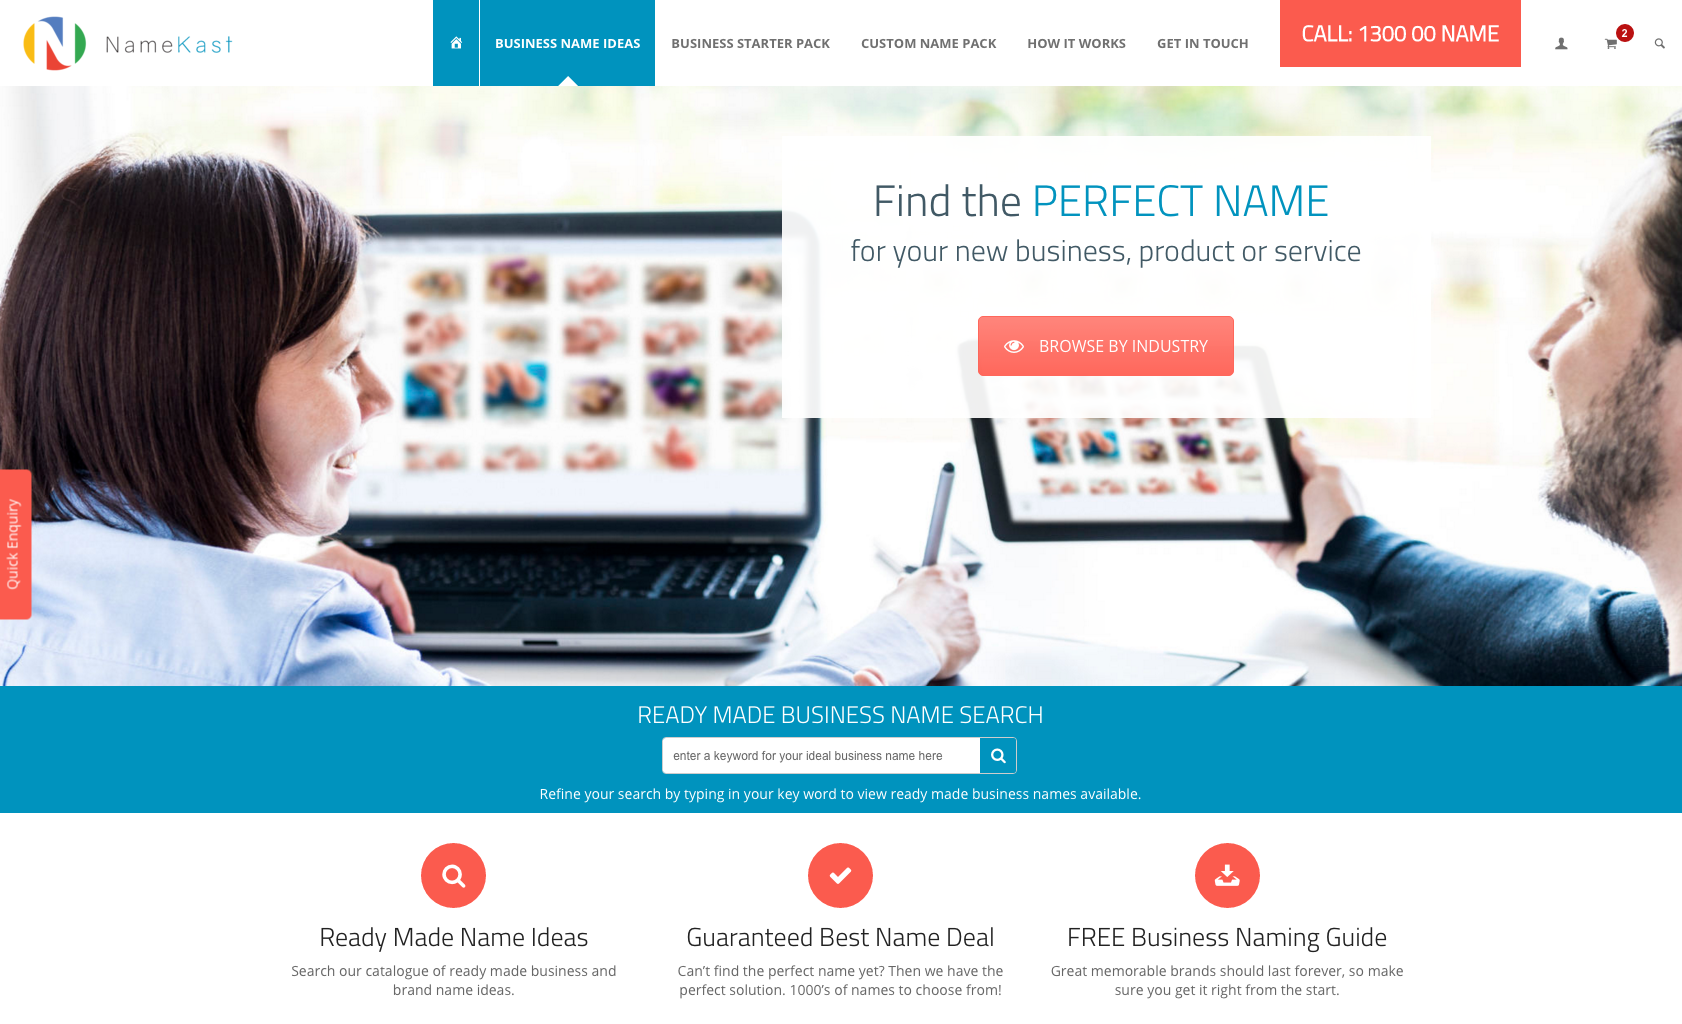 eHub – Website Design & Hosting